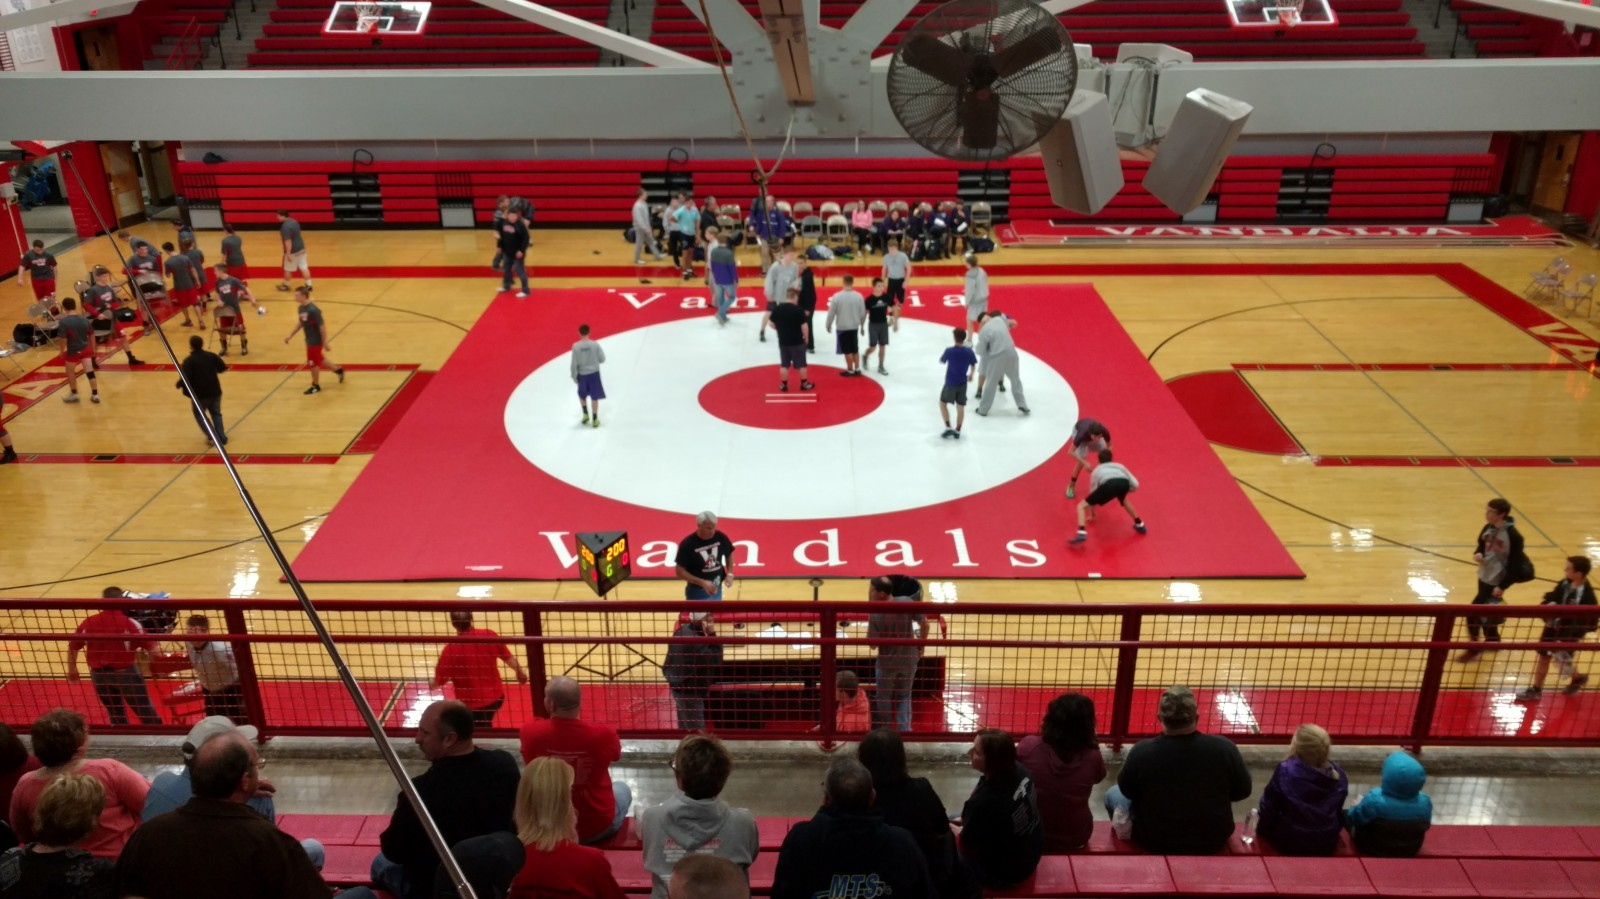 Vandals wrestlers with home quad today